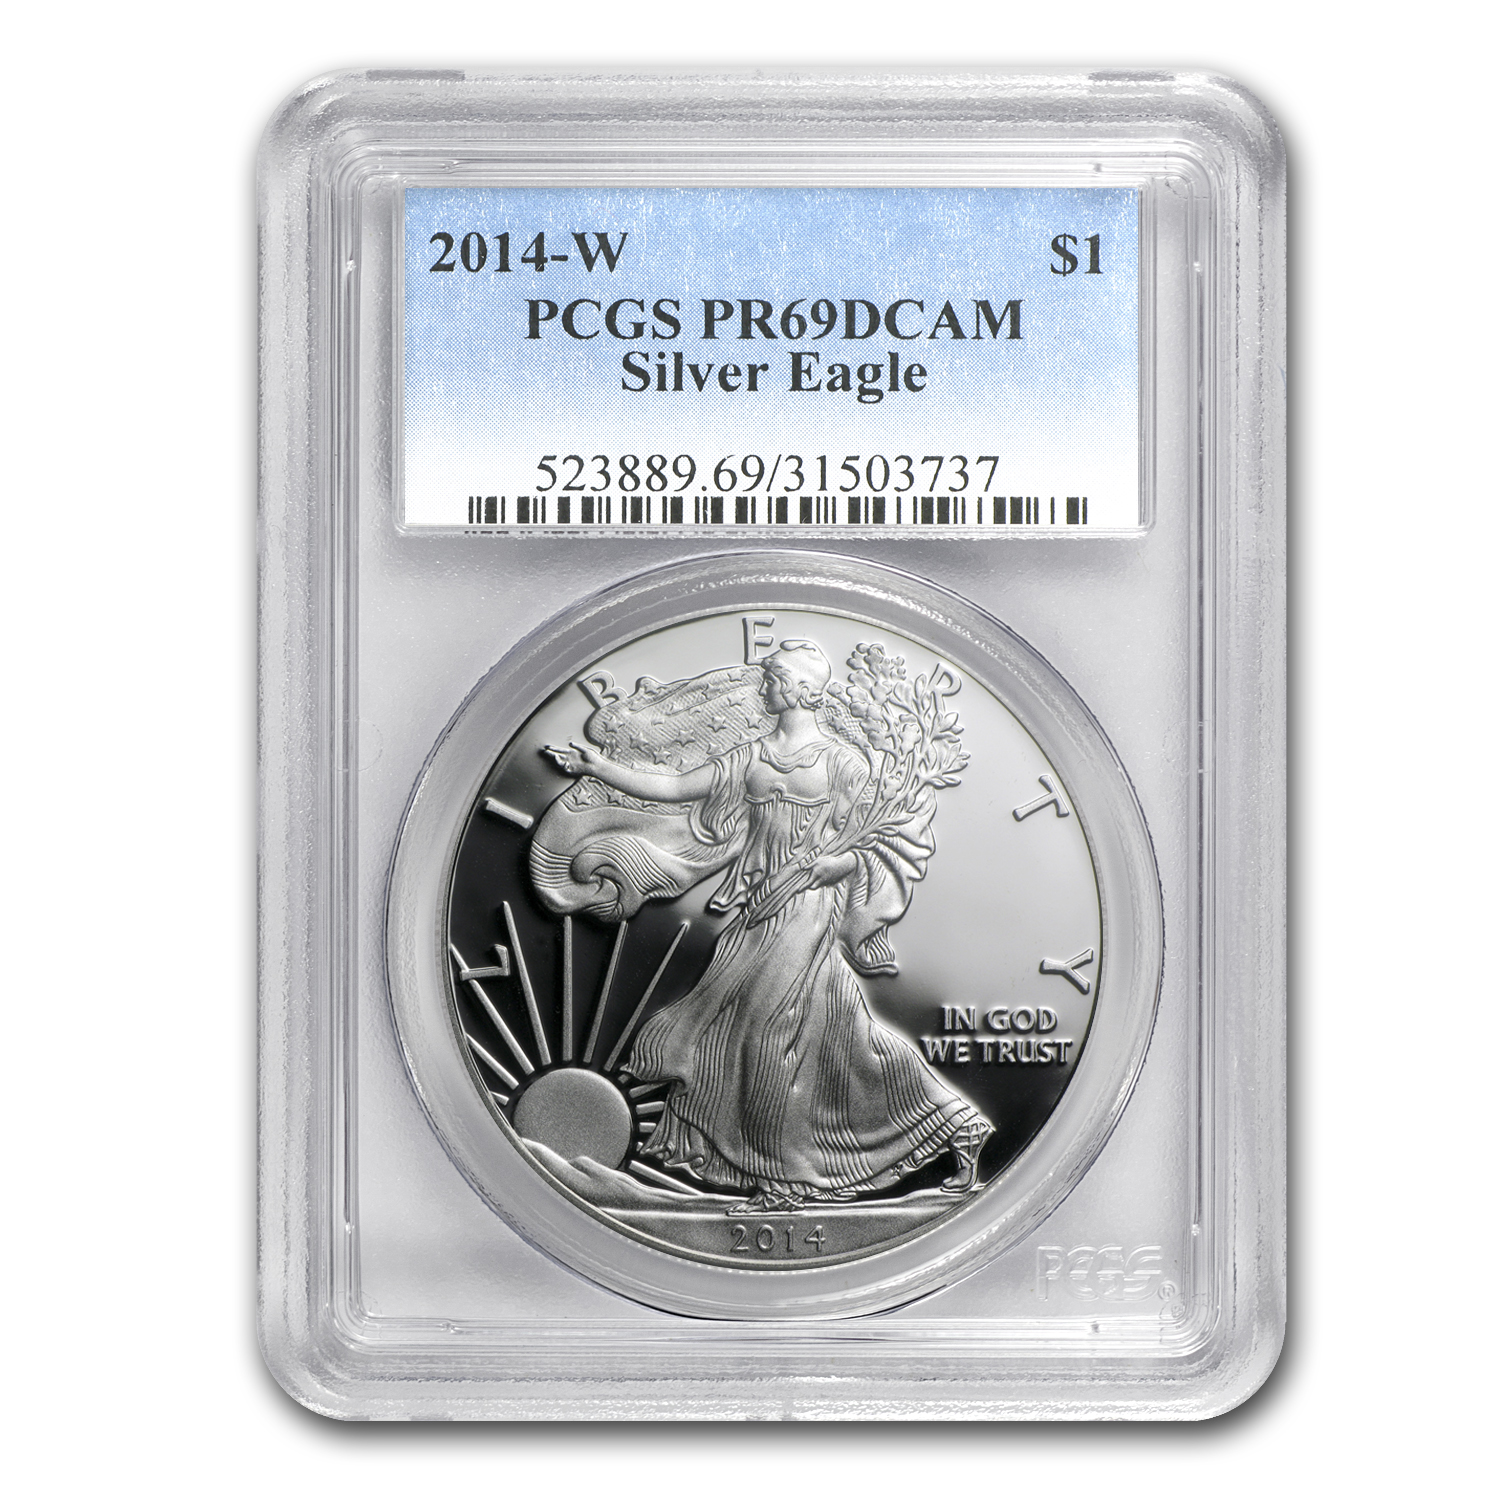 2014-W Proof Silver American Eagle PR-69 PCGS